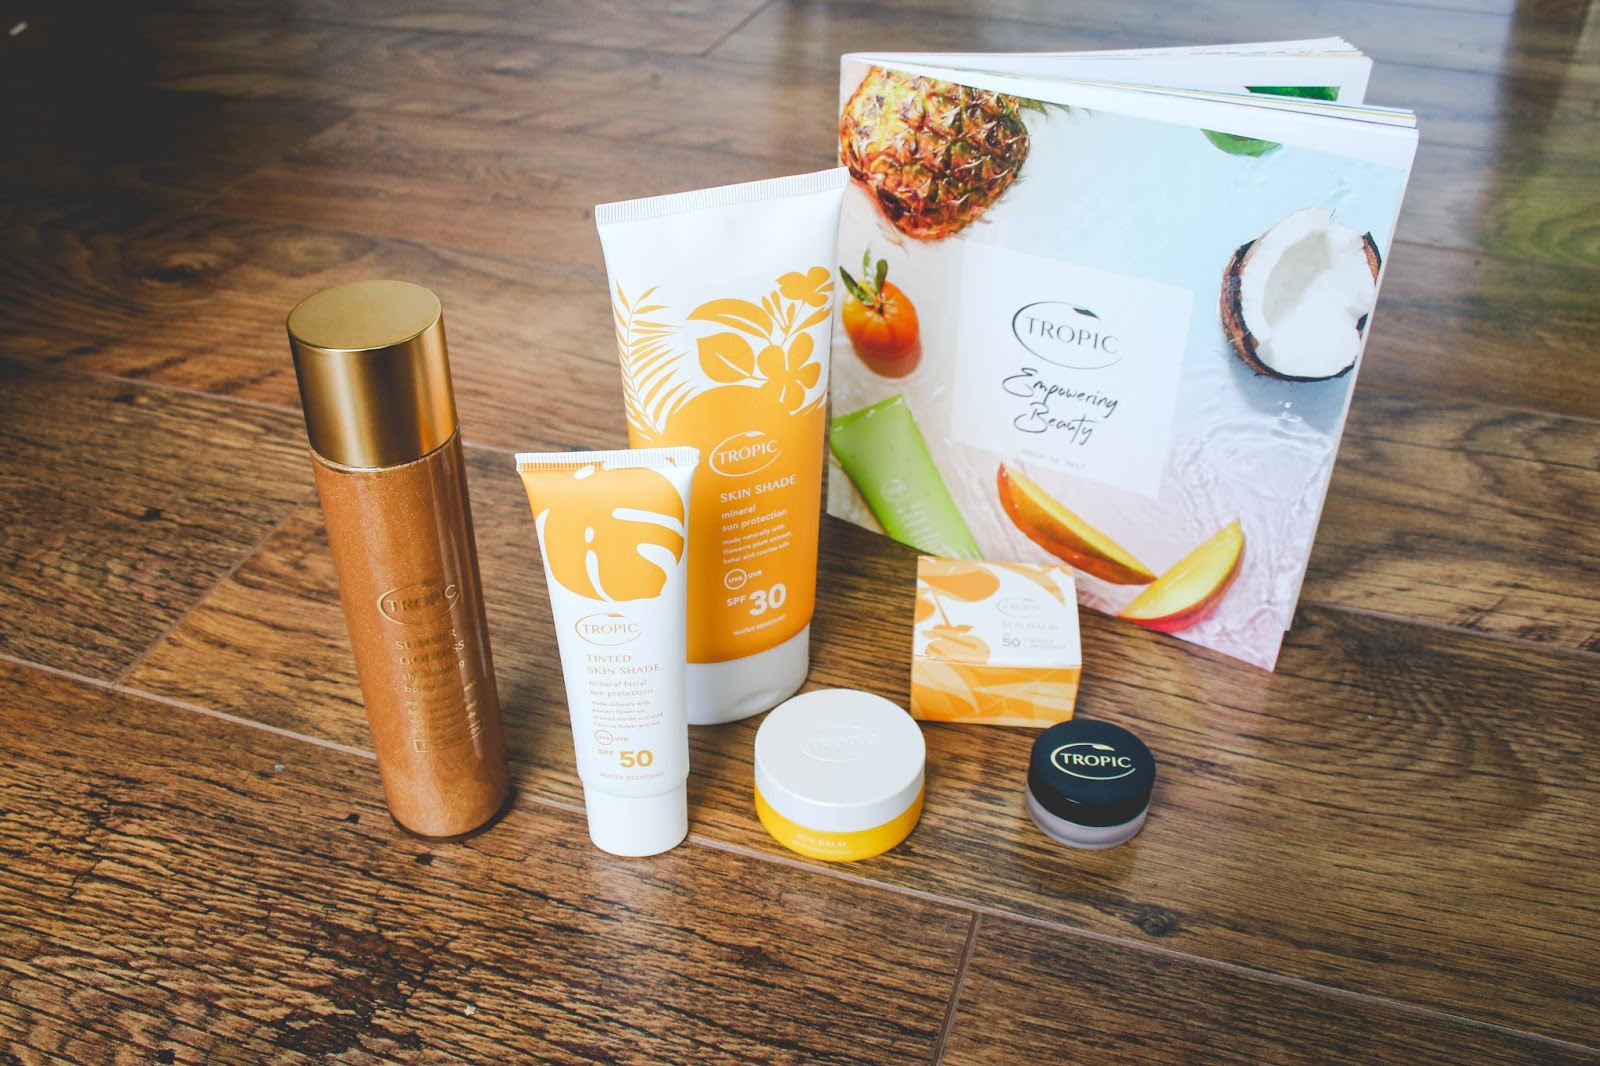 Tropic skincare sunscreen review